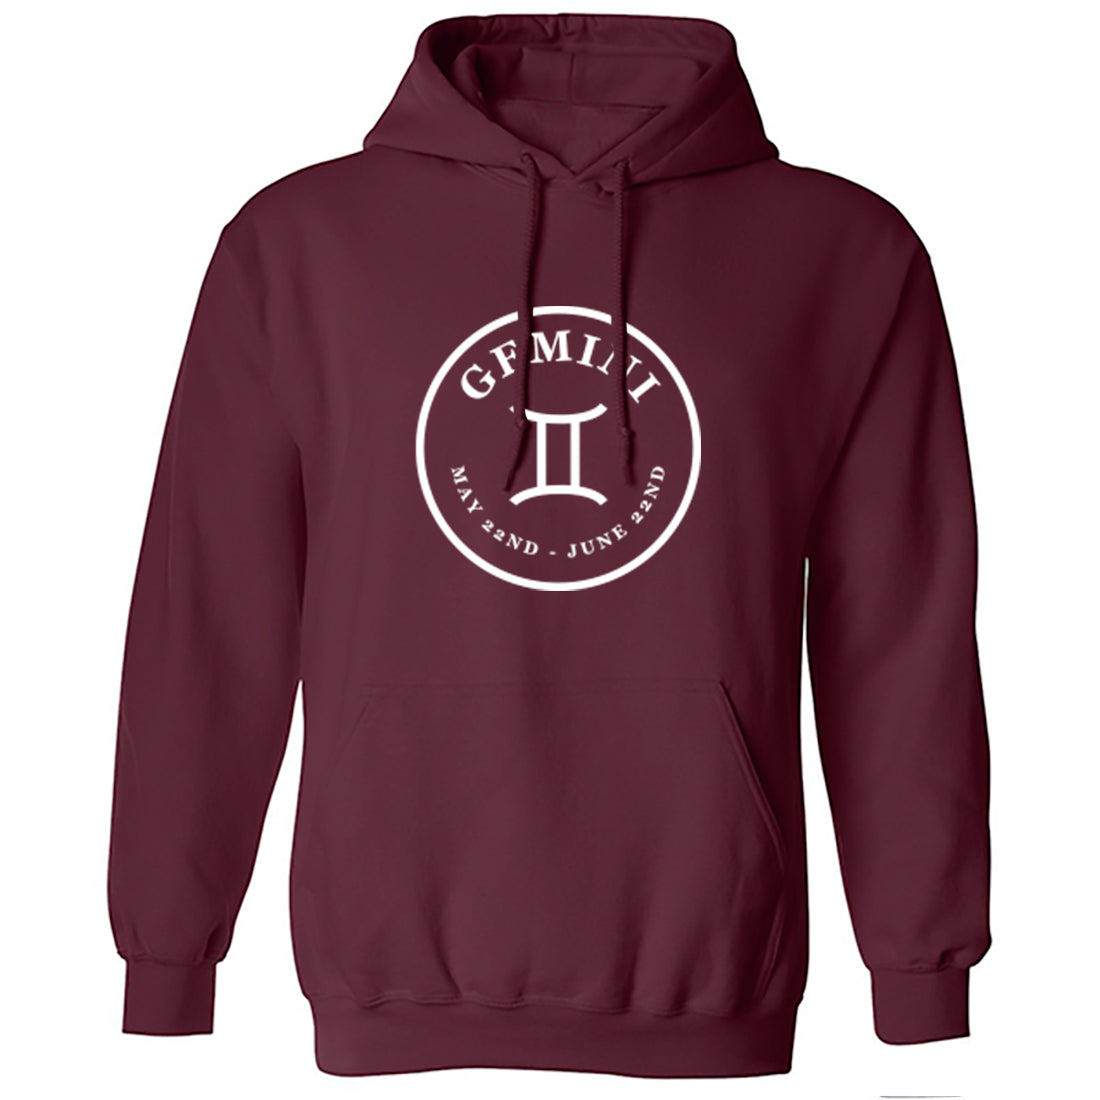 Gemini Zodiac Sign Unisex Hoodie K2101 - Illustrated Identity Ltd.